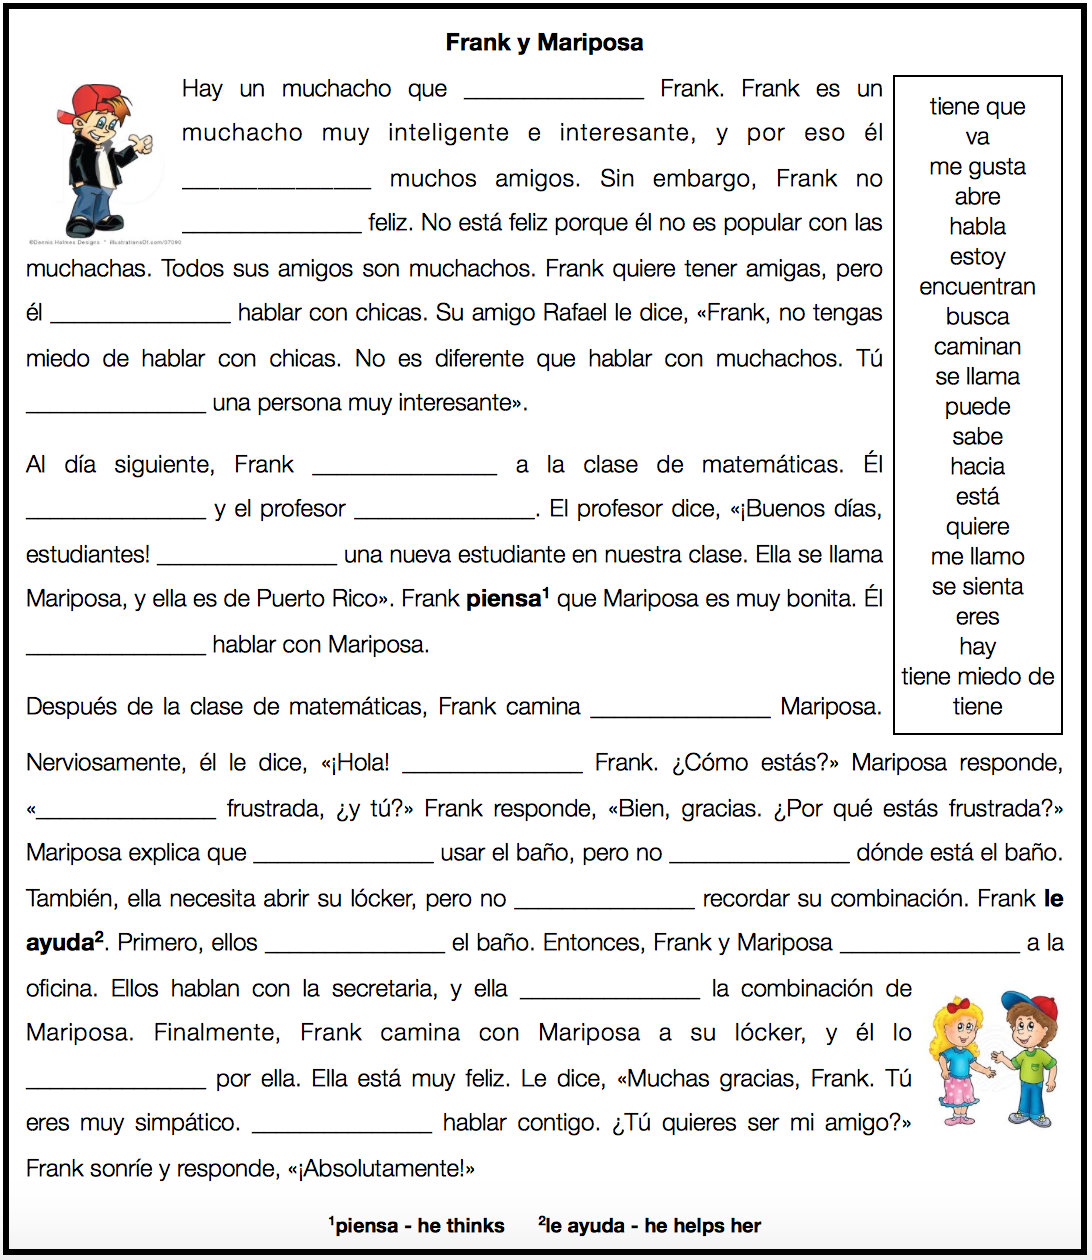 Worksheets Spanish Reading Comprehension Worksheets spanish 1a midterm by martina bex the comprehensible classroom here is my for reading complete cloze passage using target structures from th